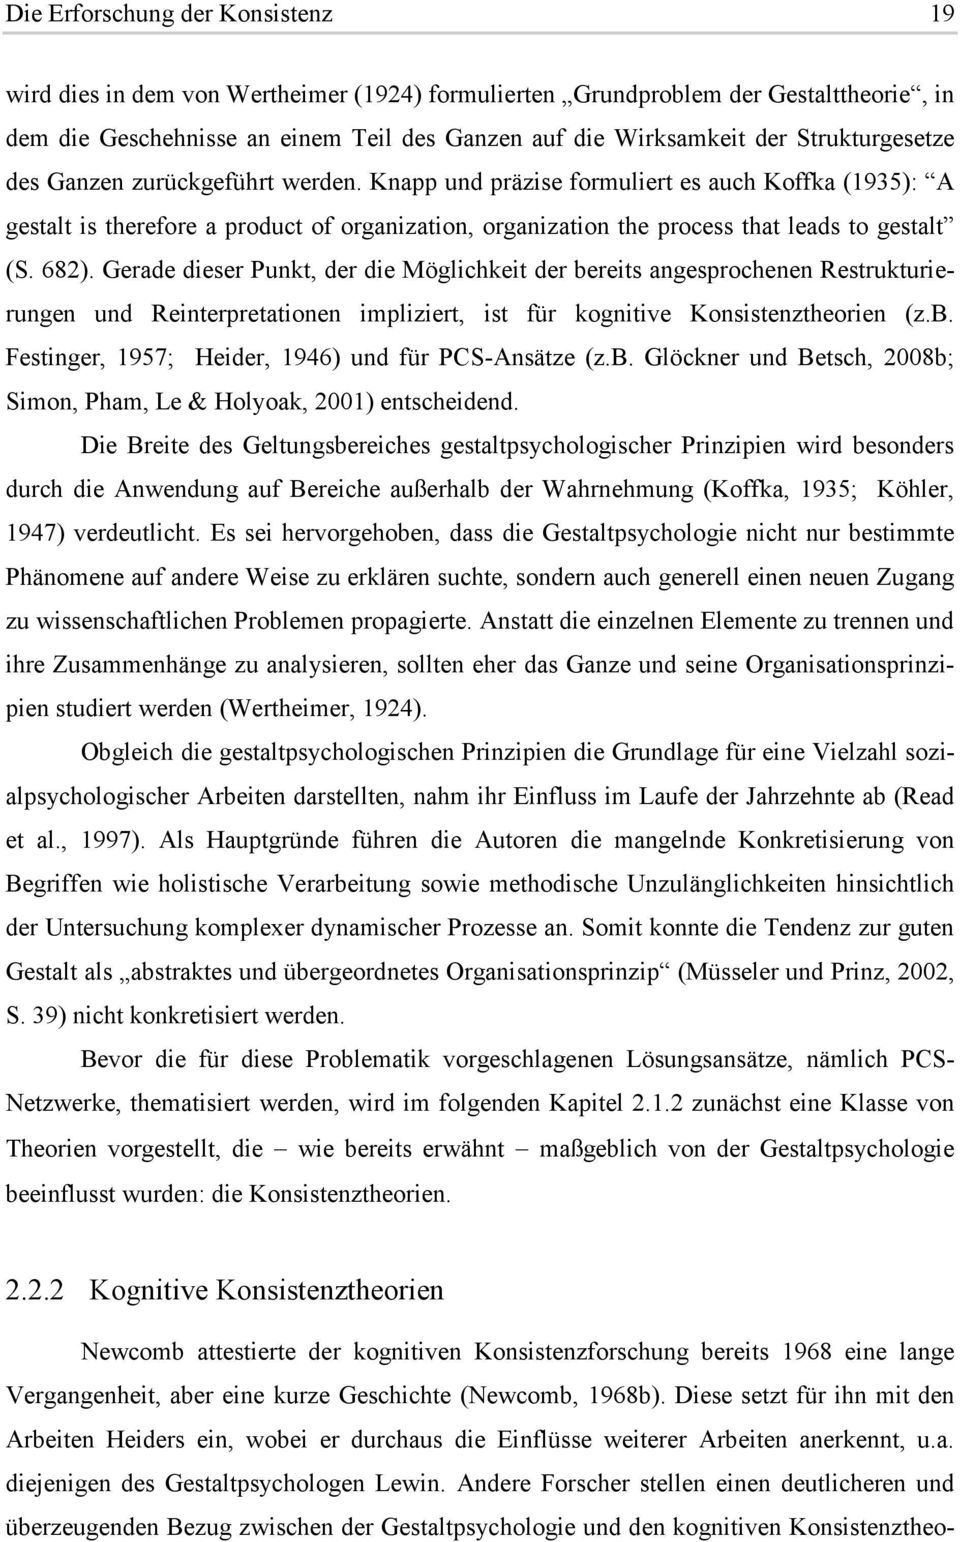 Knapp und präzise formuliert es auch Koffka (1935): A gestalt is therefore a product of organization, organization the process that leads to gestalt (S. 682).